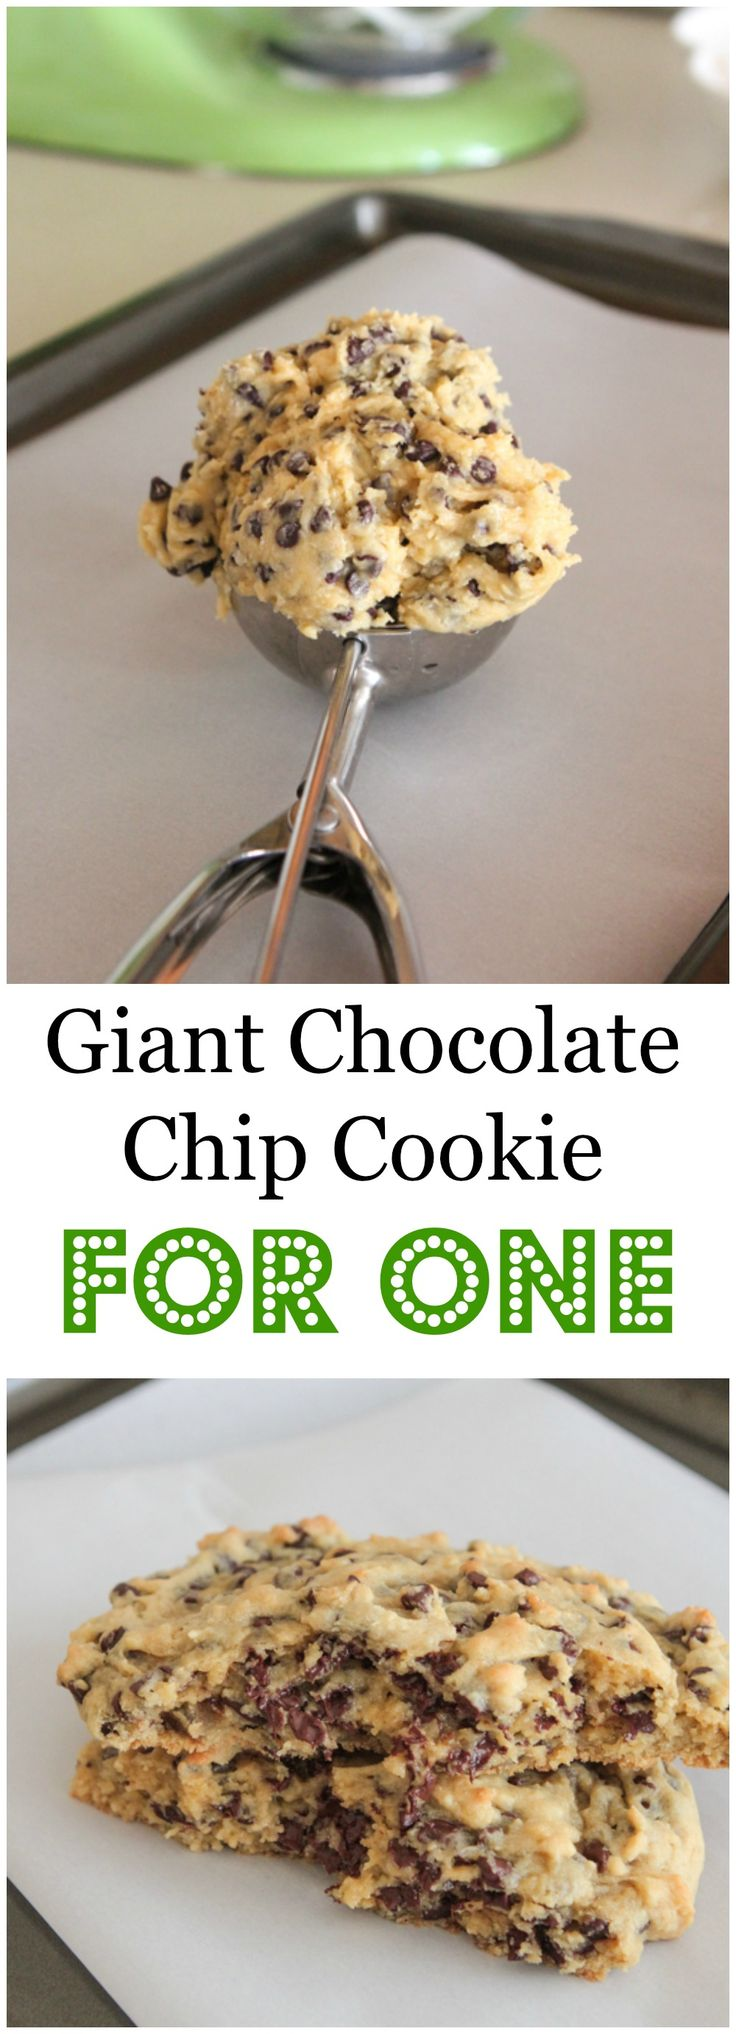 Giant Chocolate Chip Cookie Recipe For One! Whip up a delicious butter crisp yet soft centered chocolate chip cookie all for yourself :) #cookie #recipe #chocolatechip